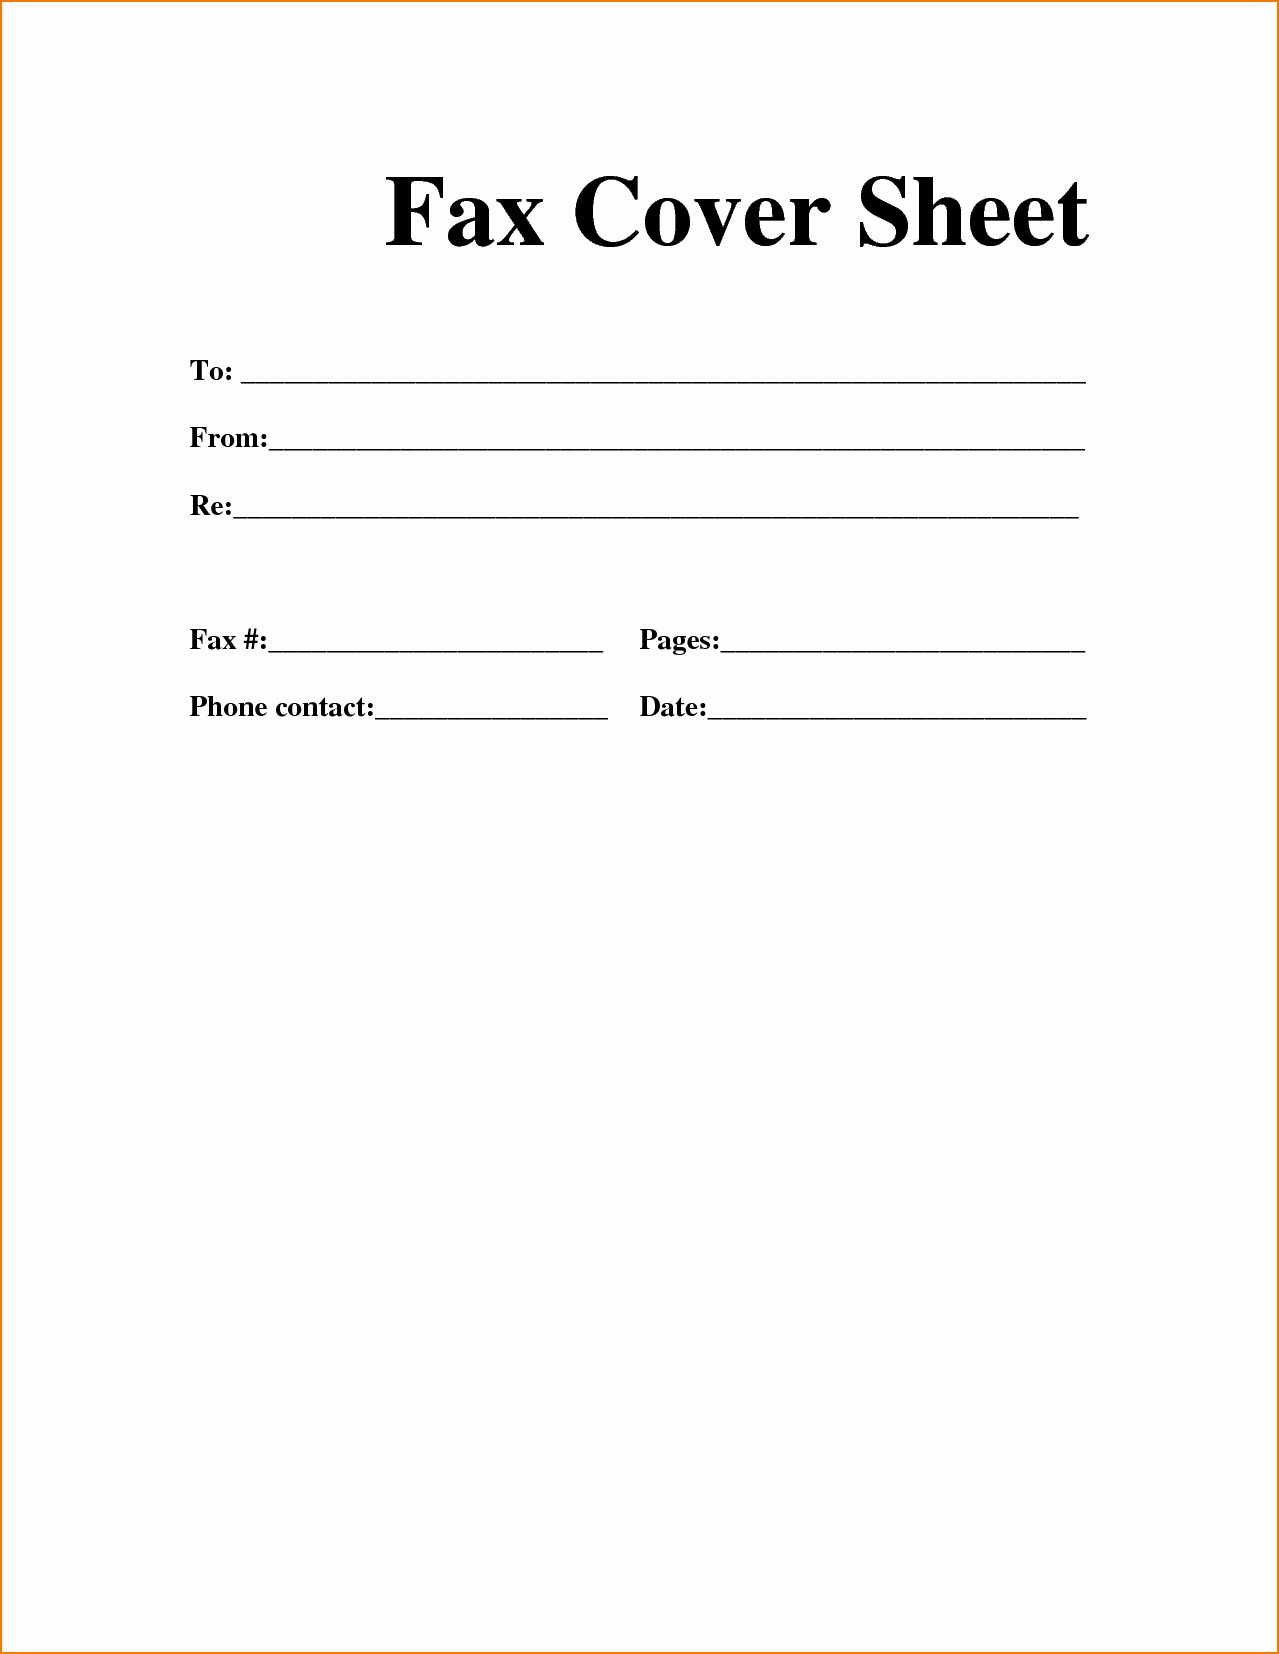 Free Blank Fax Cover Sheet Awesome 6 Example Fax Cover Sheet